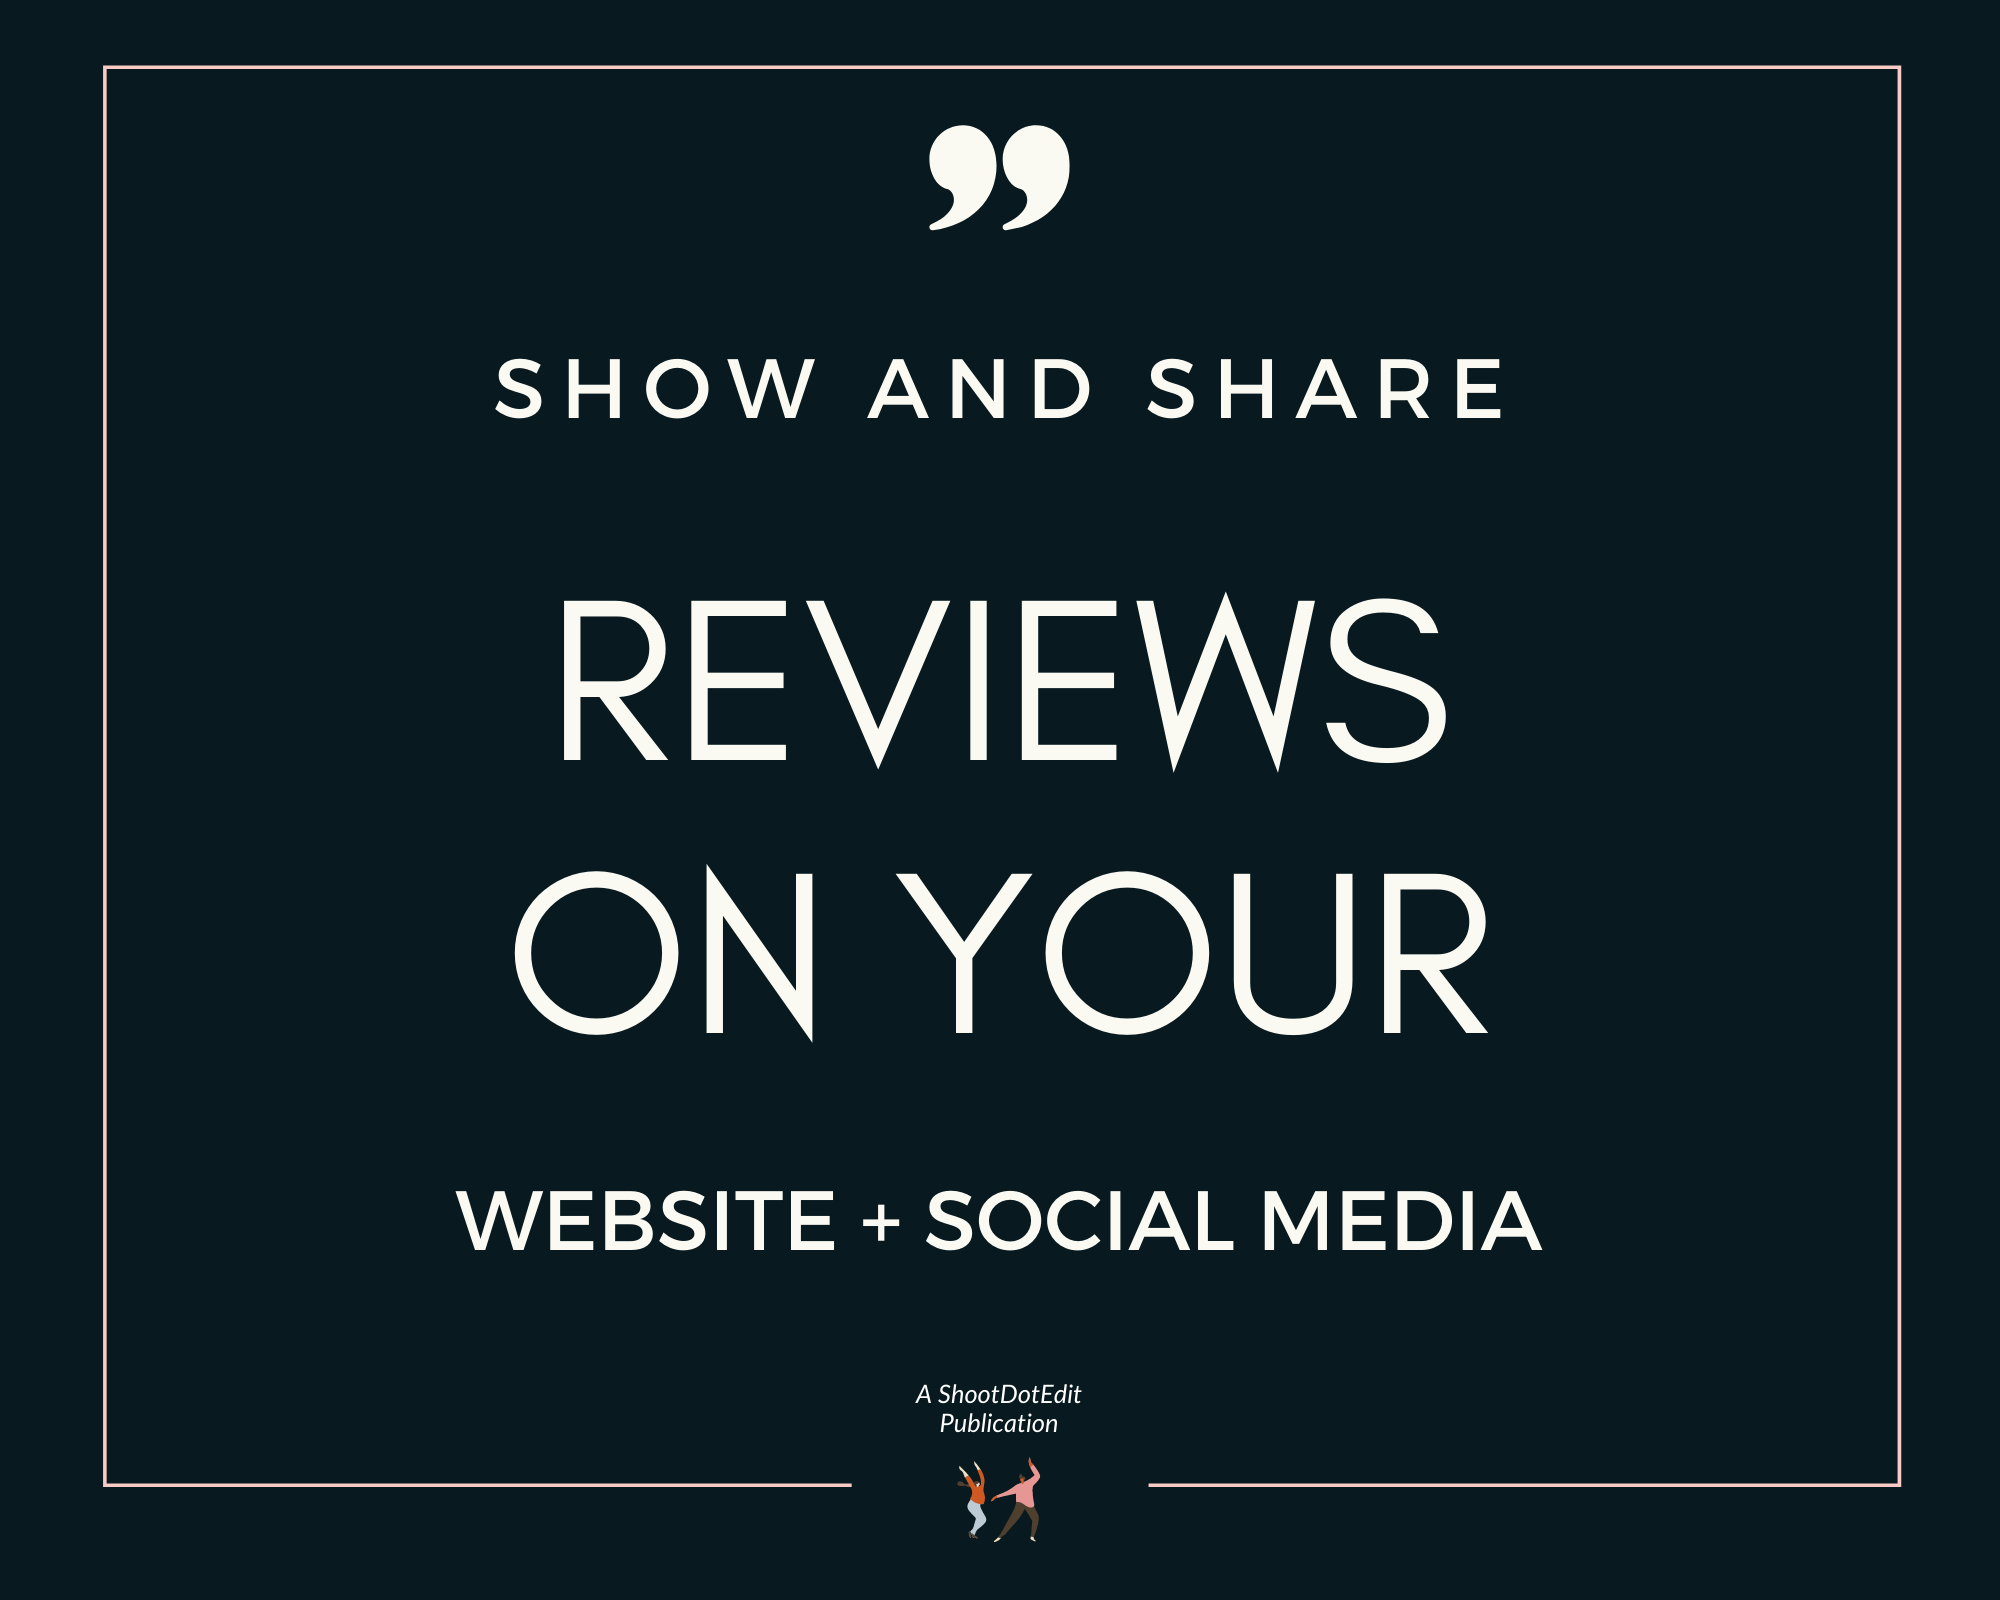 Infographic stating show and share reviews on your website and social media